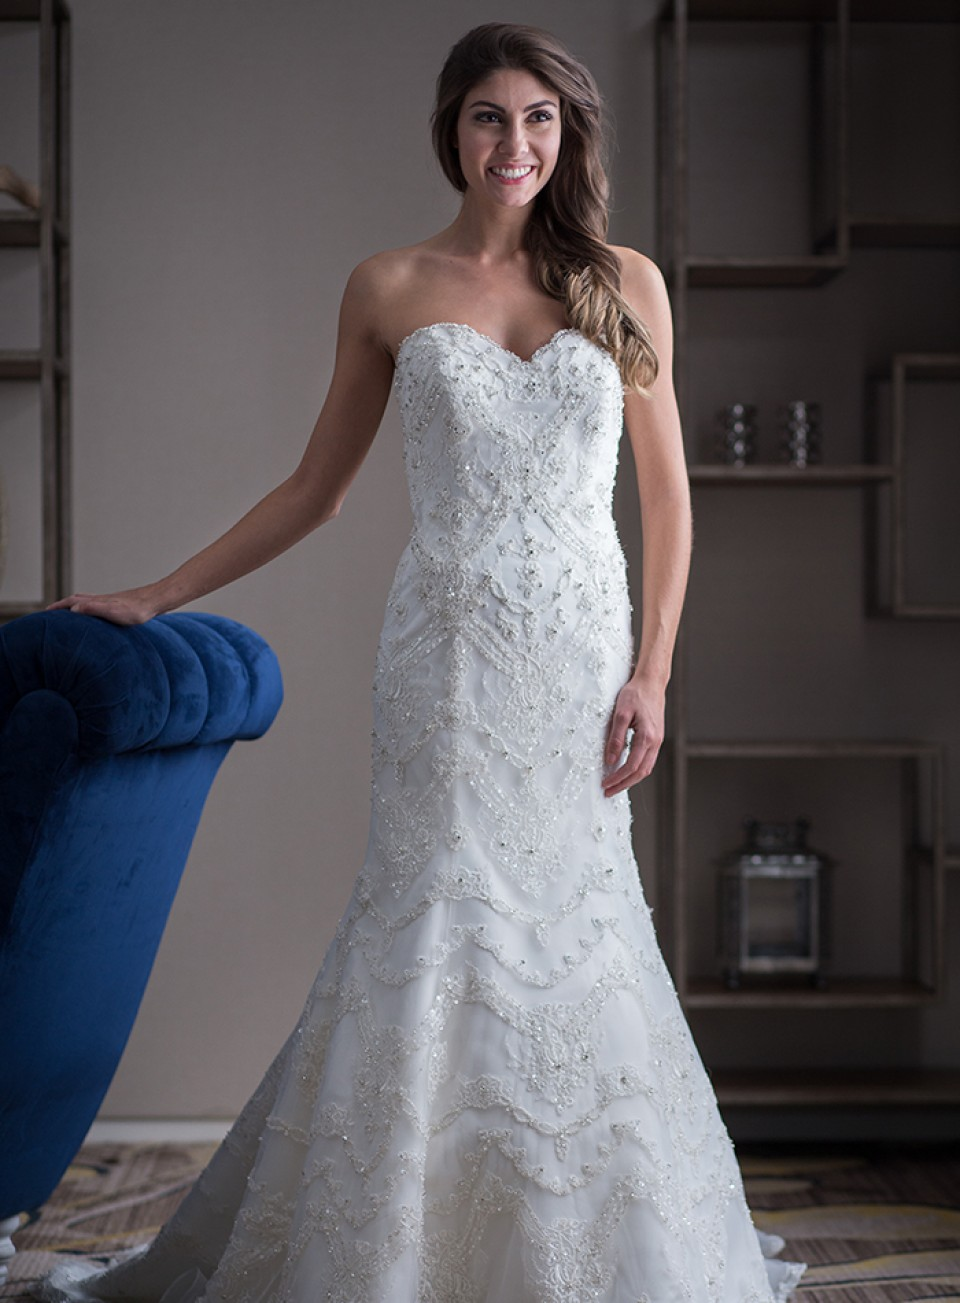 anya daisy wedding dress